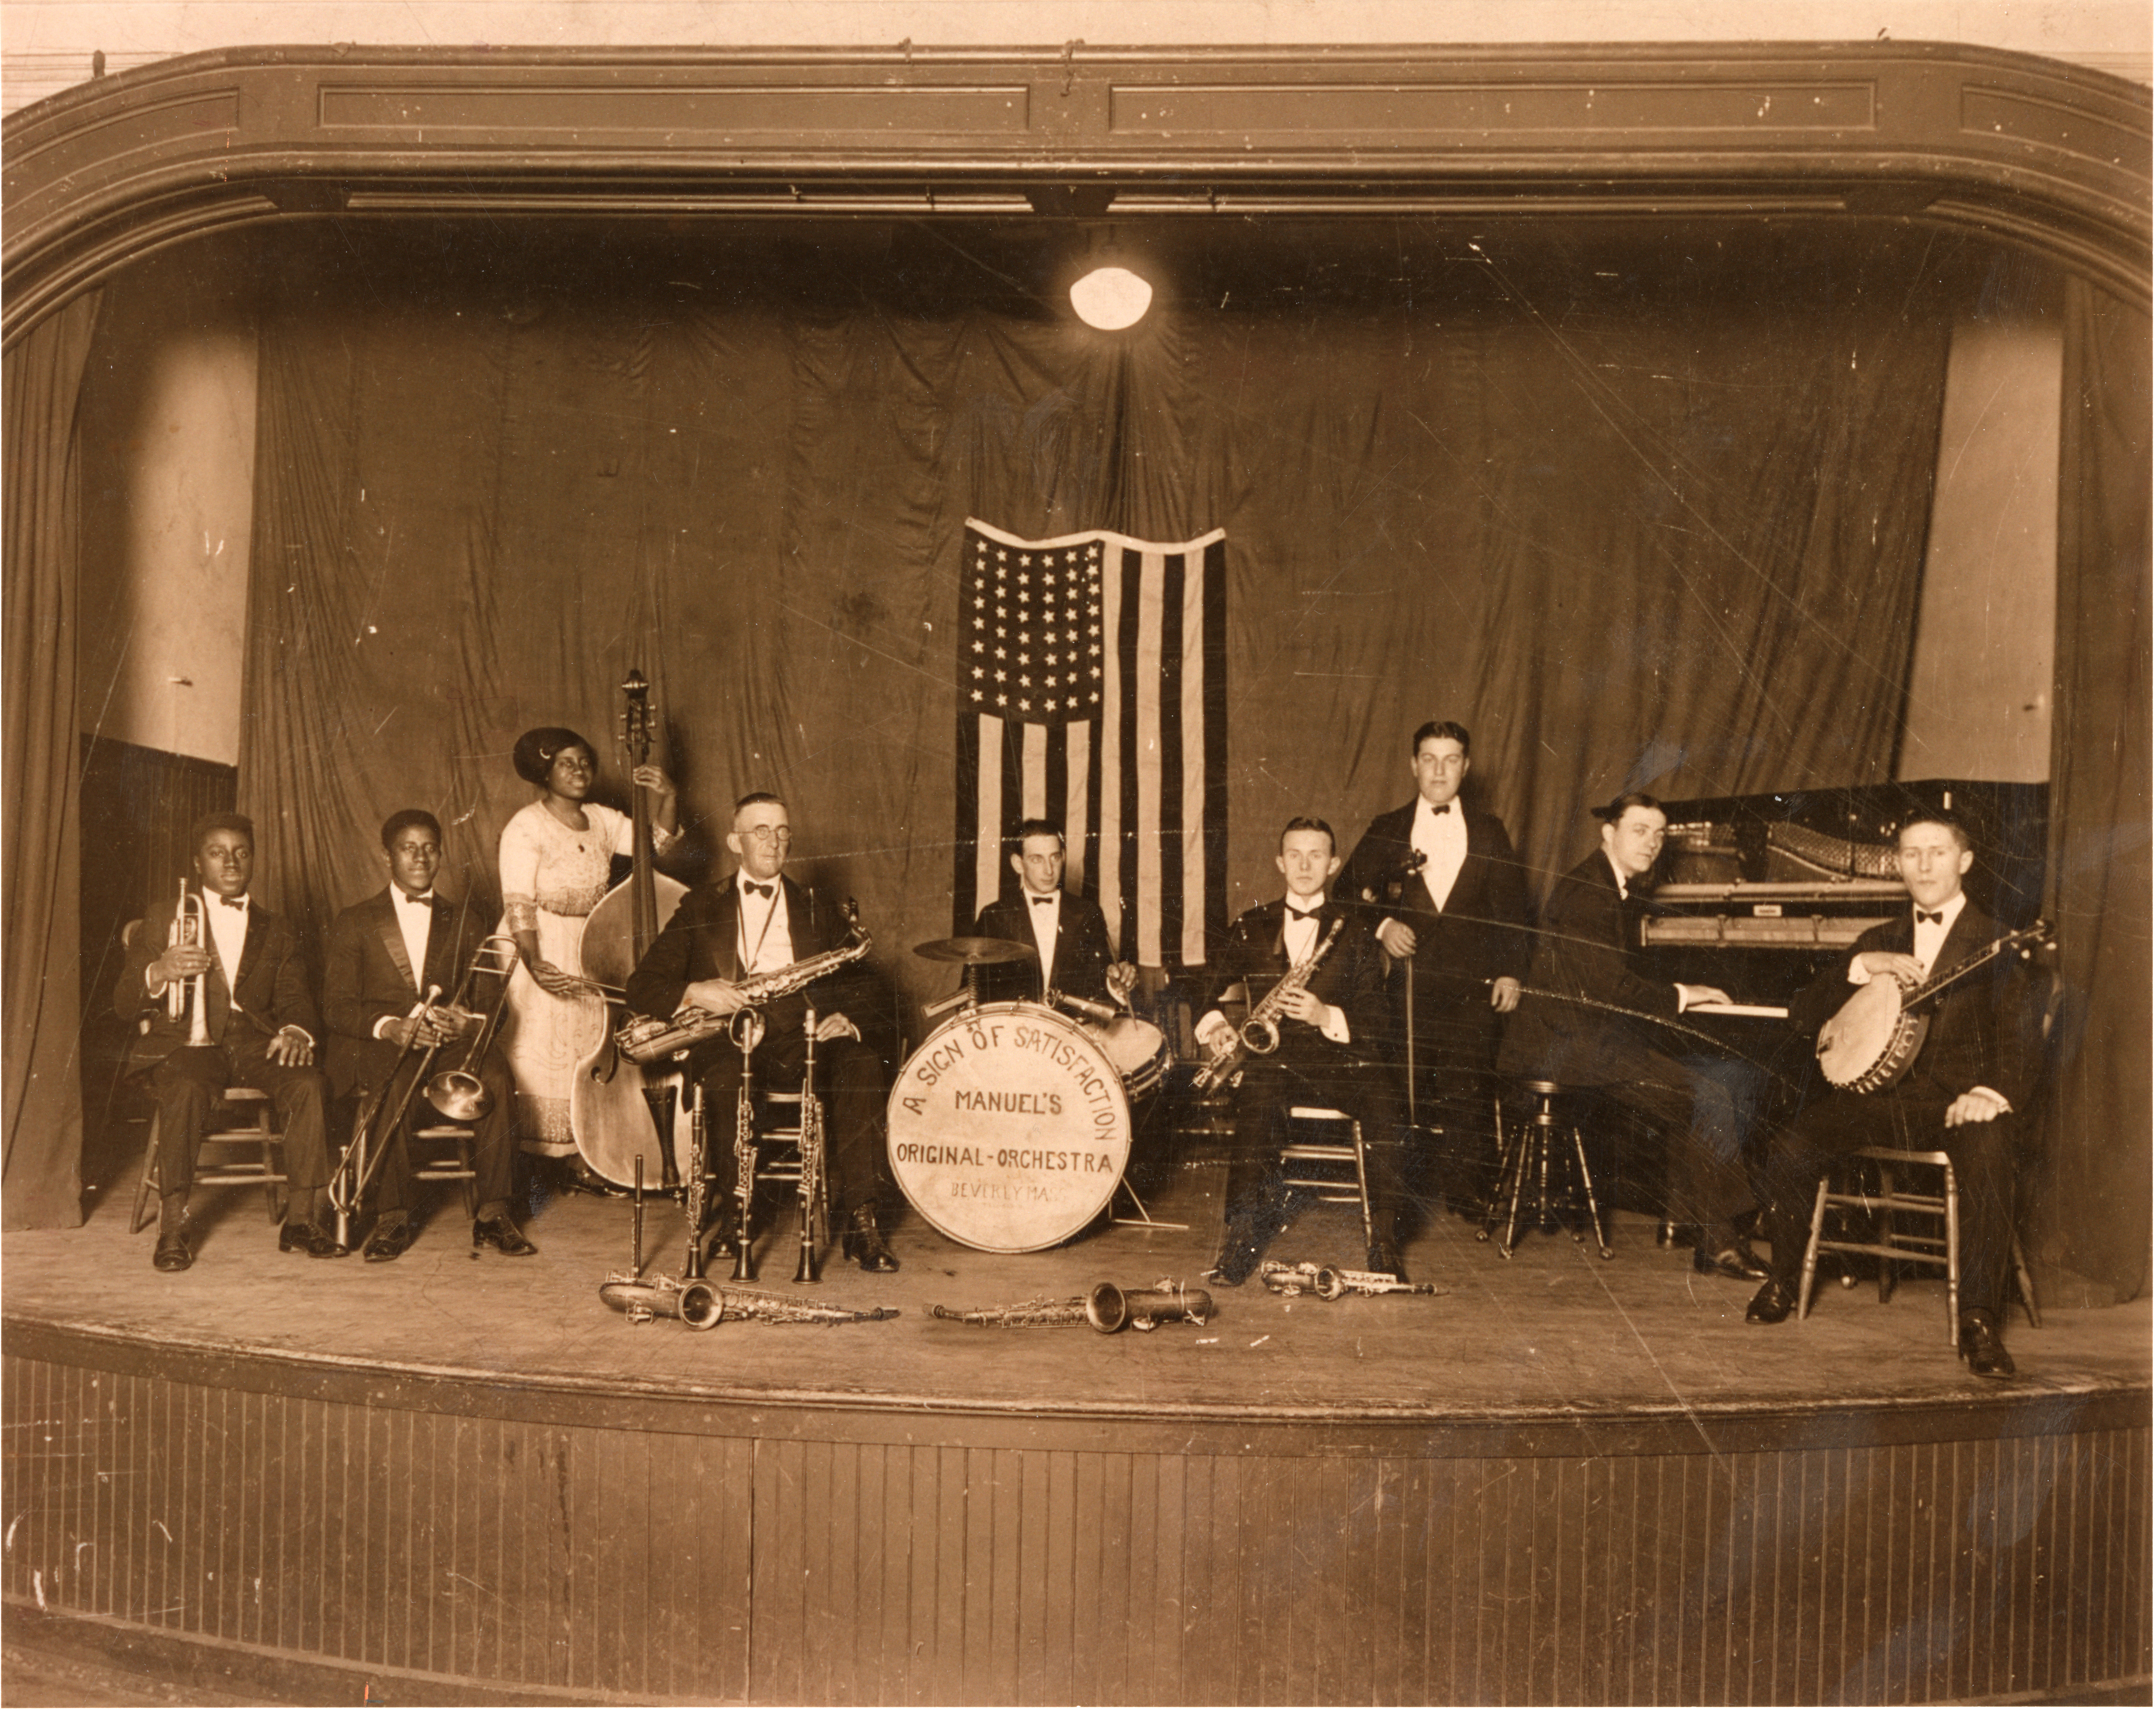 Manuel's Original Orchestra, Beverly, Massachusetts. Photograph attributed to L…